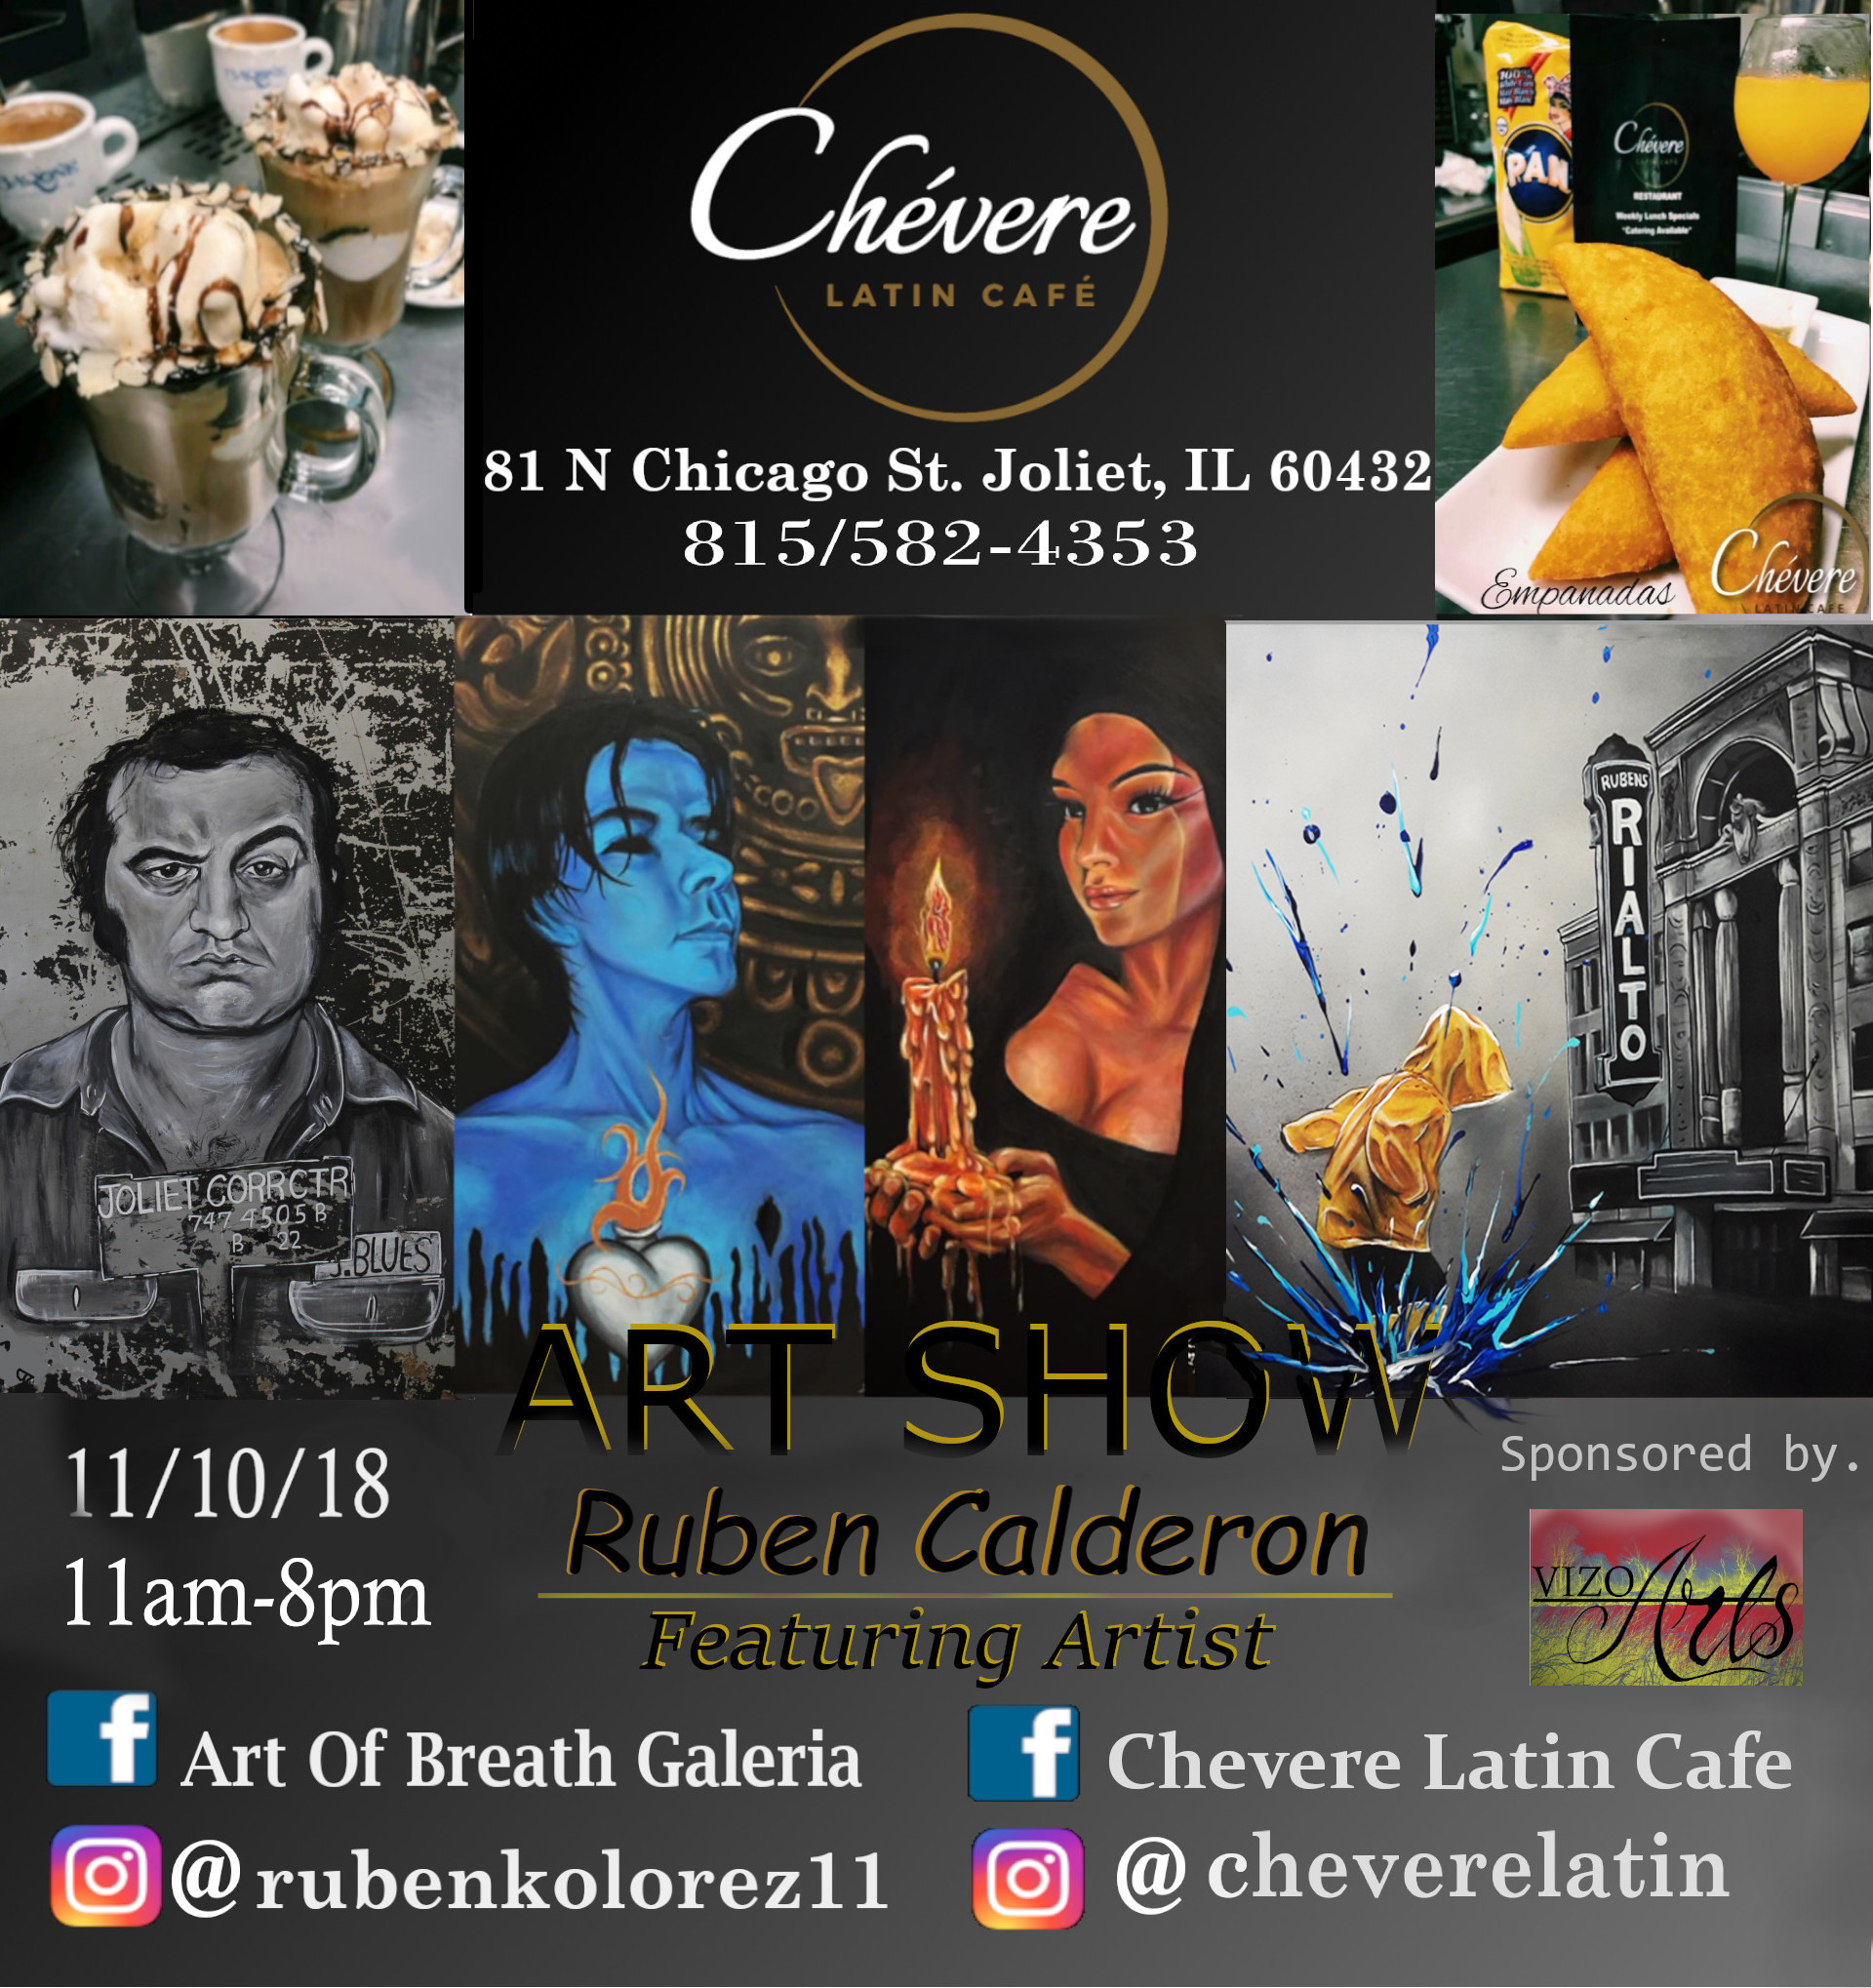 A flyer from one of Ruben's art shows. This show was on Saturday, November 10 from 11:00 AM to 8:00 PM at  Chevere Latin Café  in Joliet, IL. VizoArts was a proud sponsor.